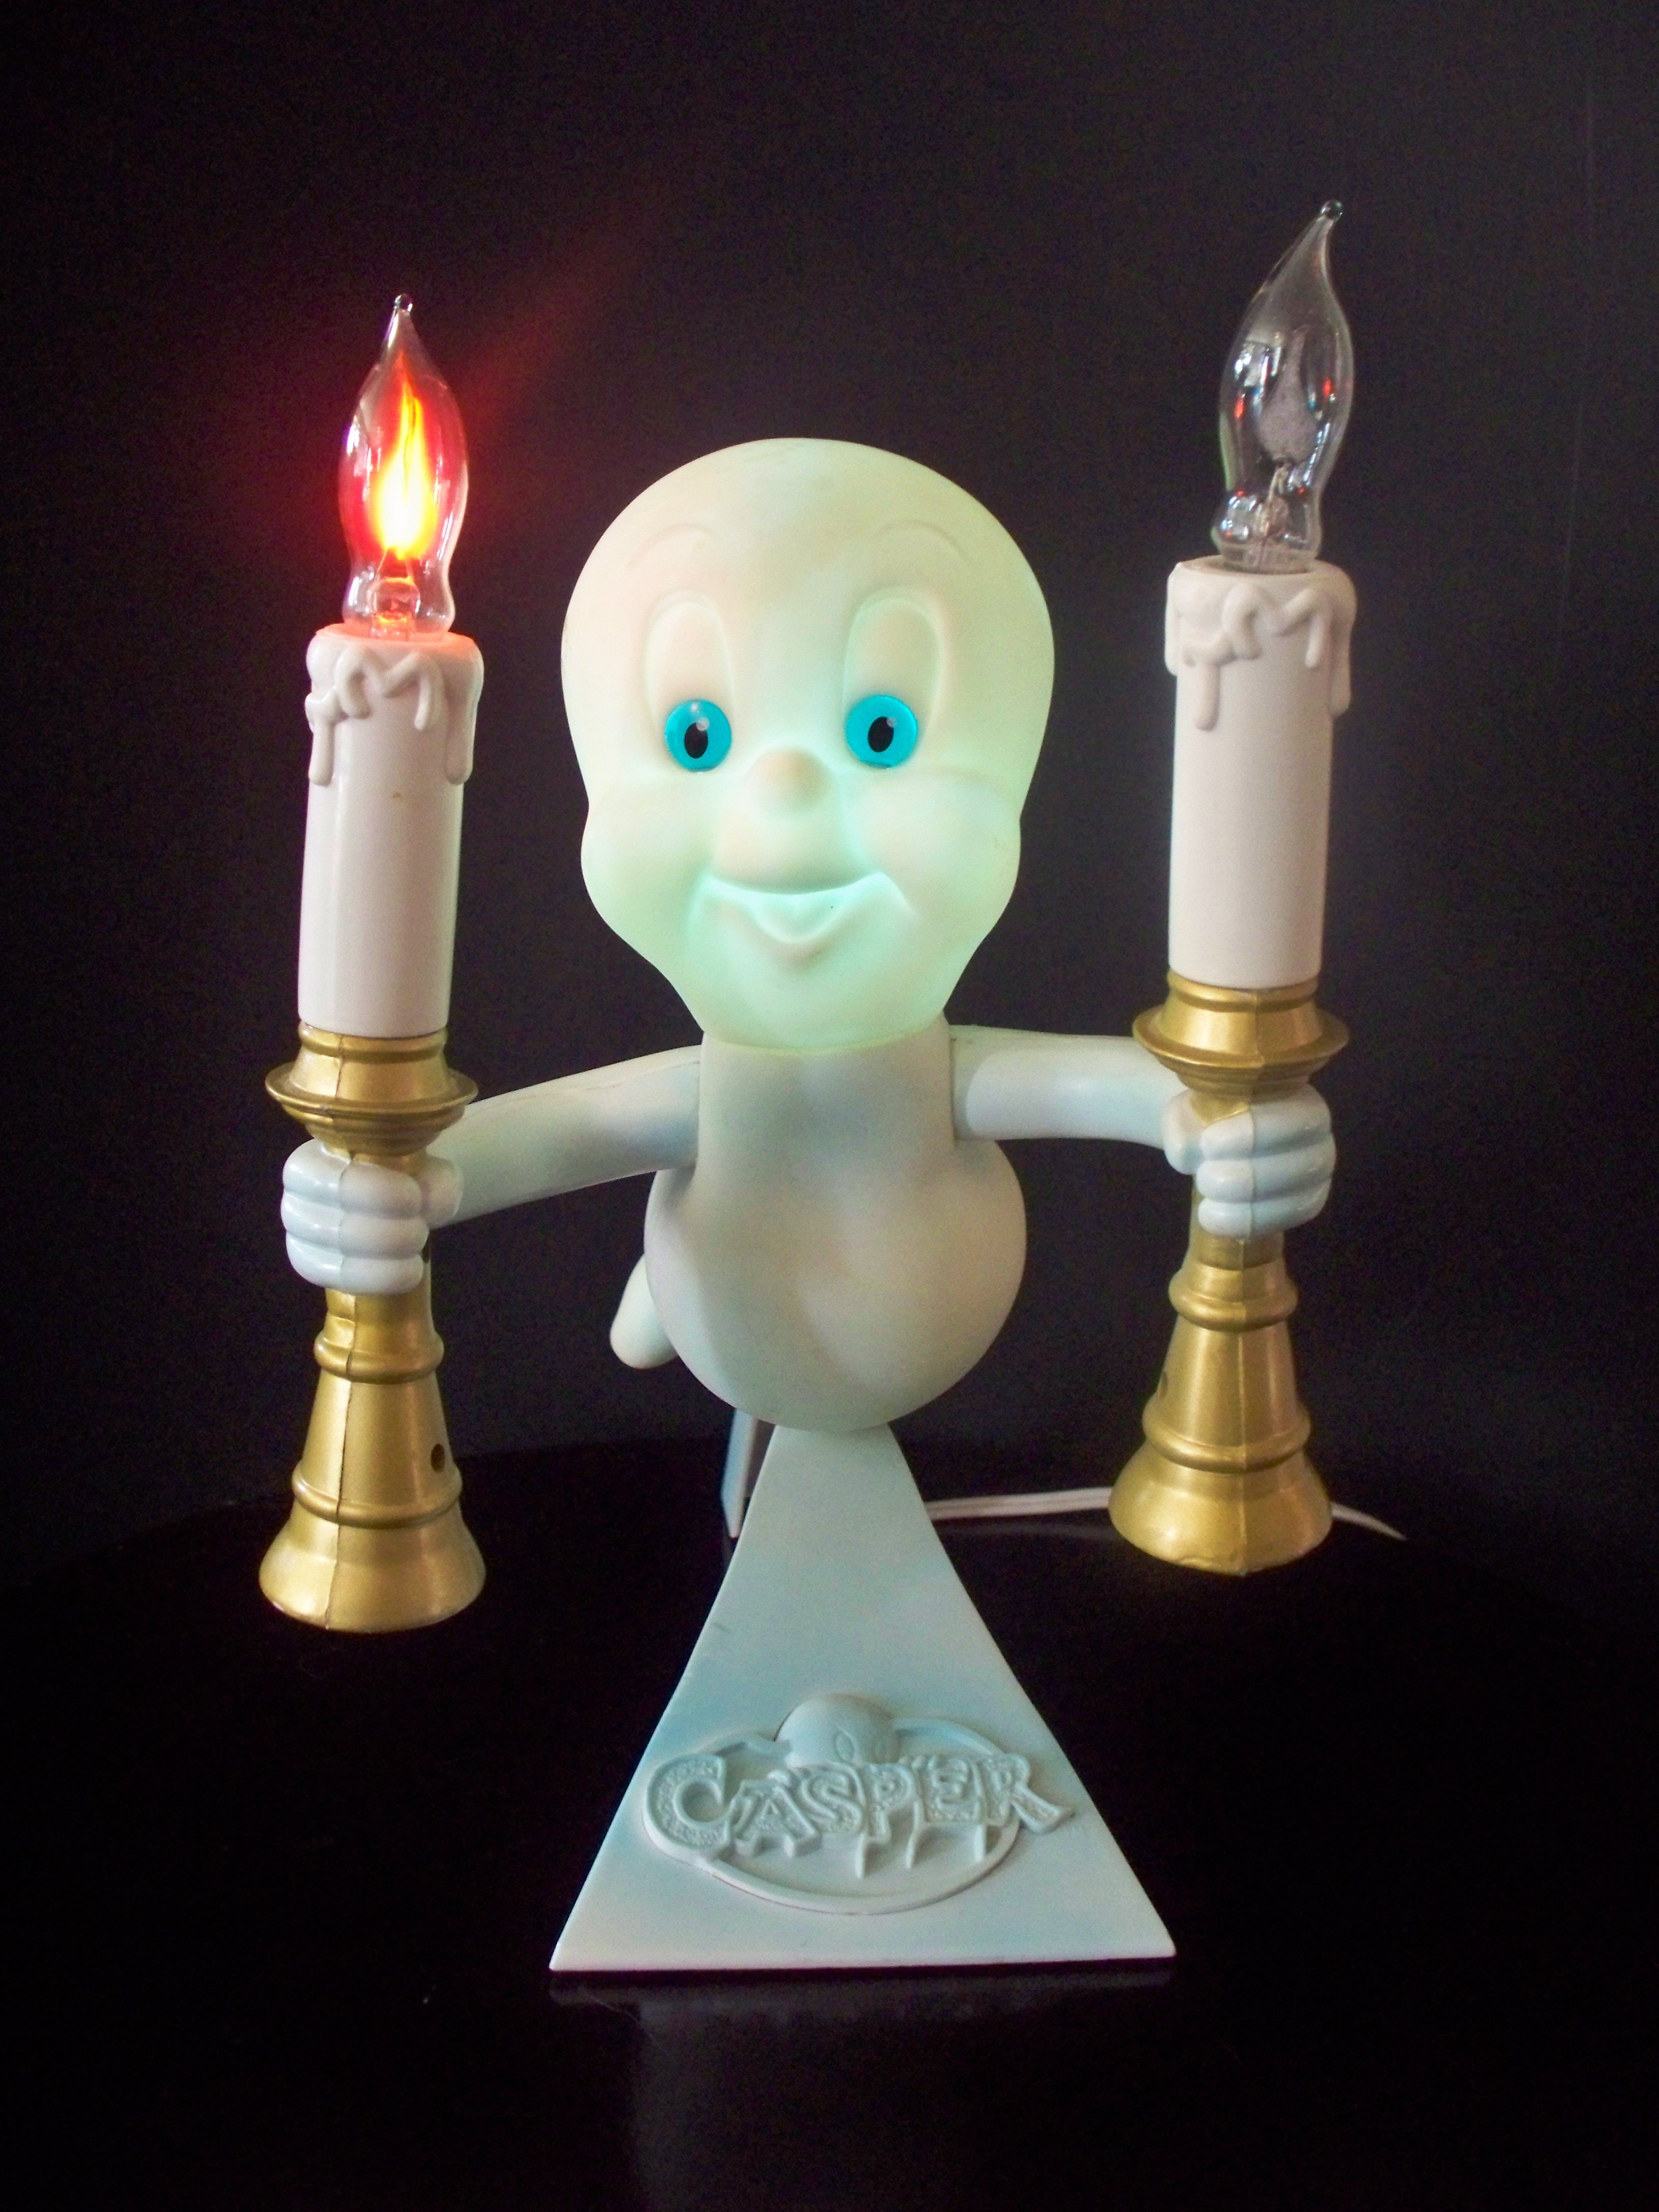 Casper the Friendly Ghost light hangs in the solarium all the time ...